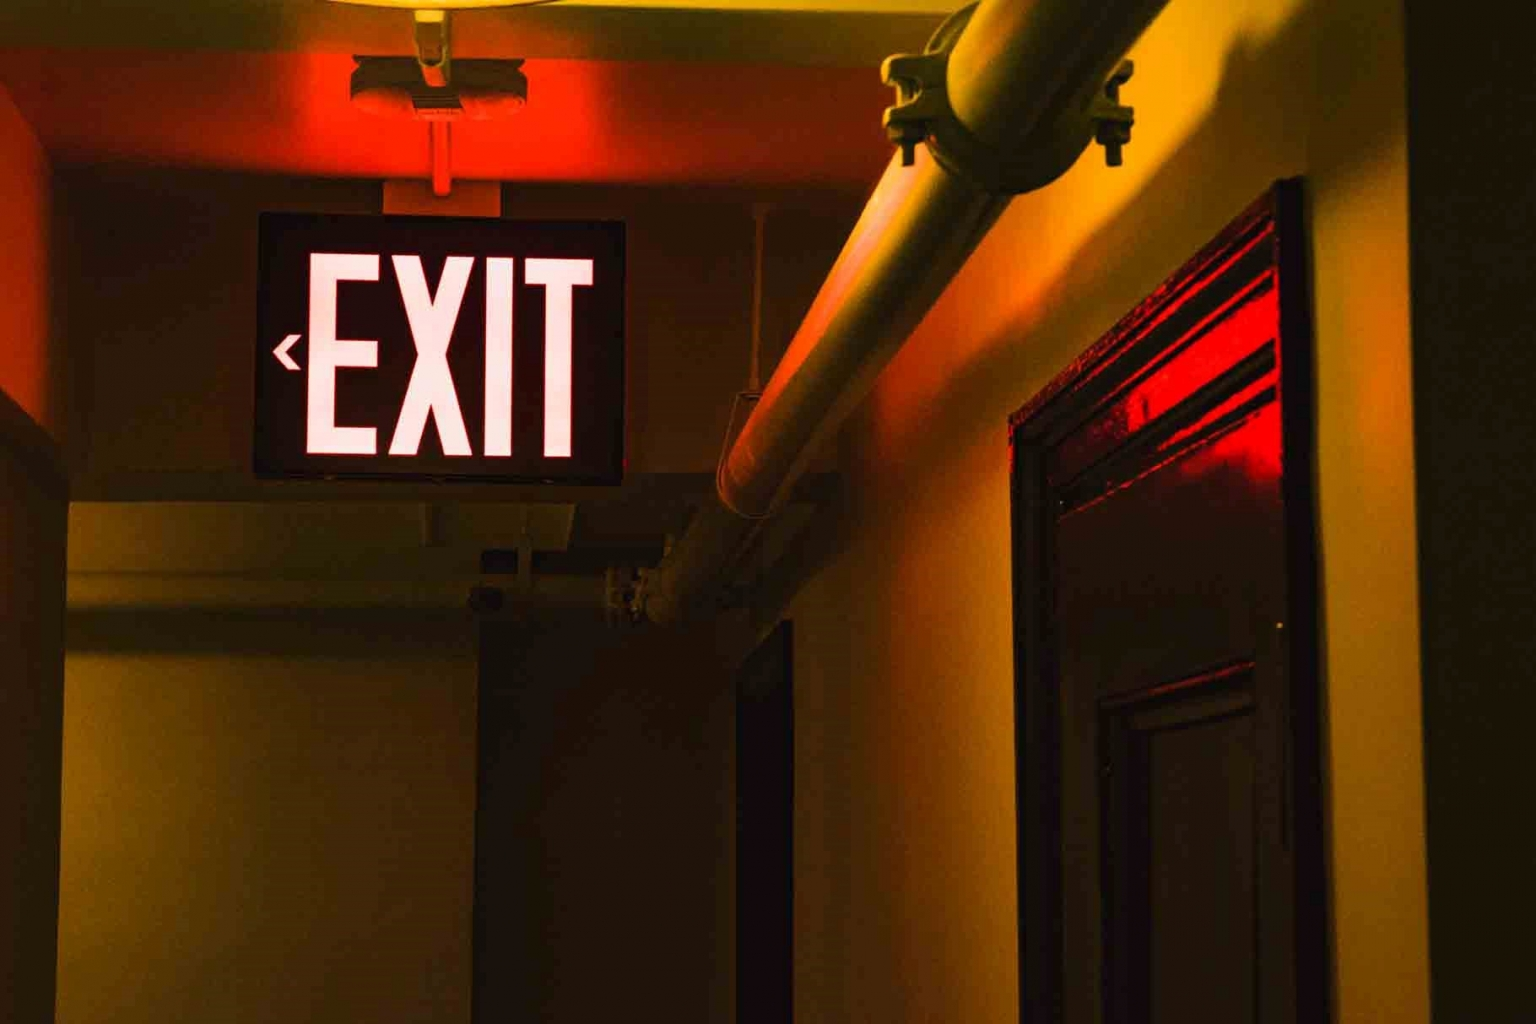 Escape Room Games: Why Losing is Important?